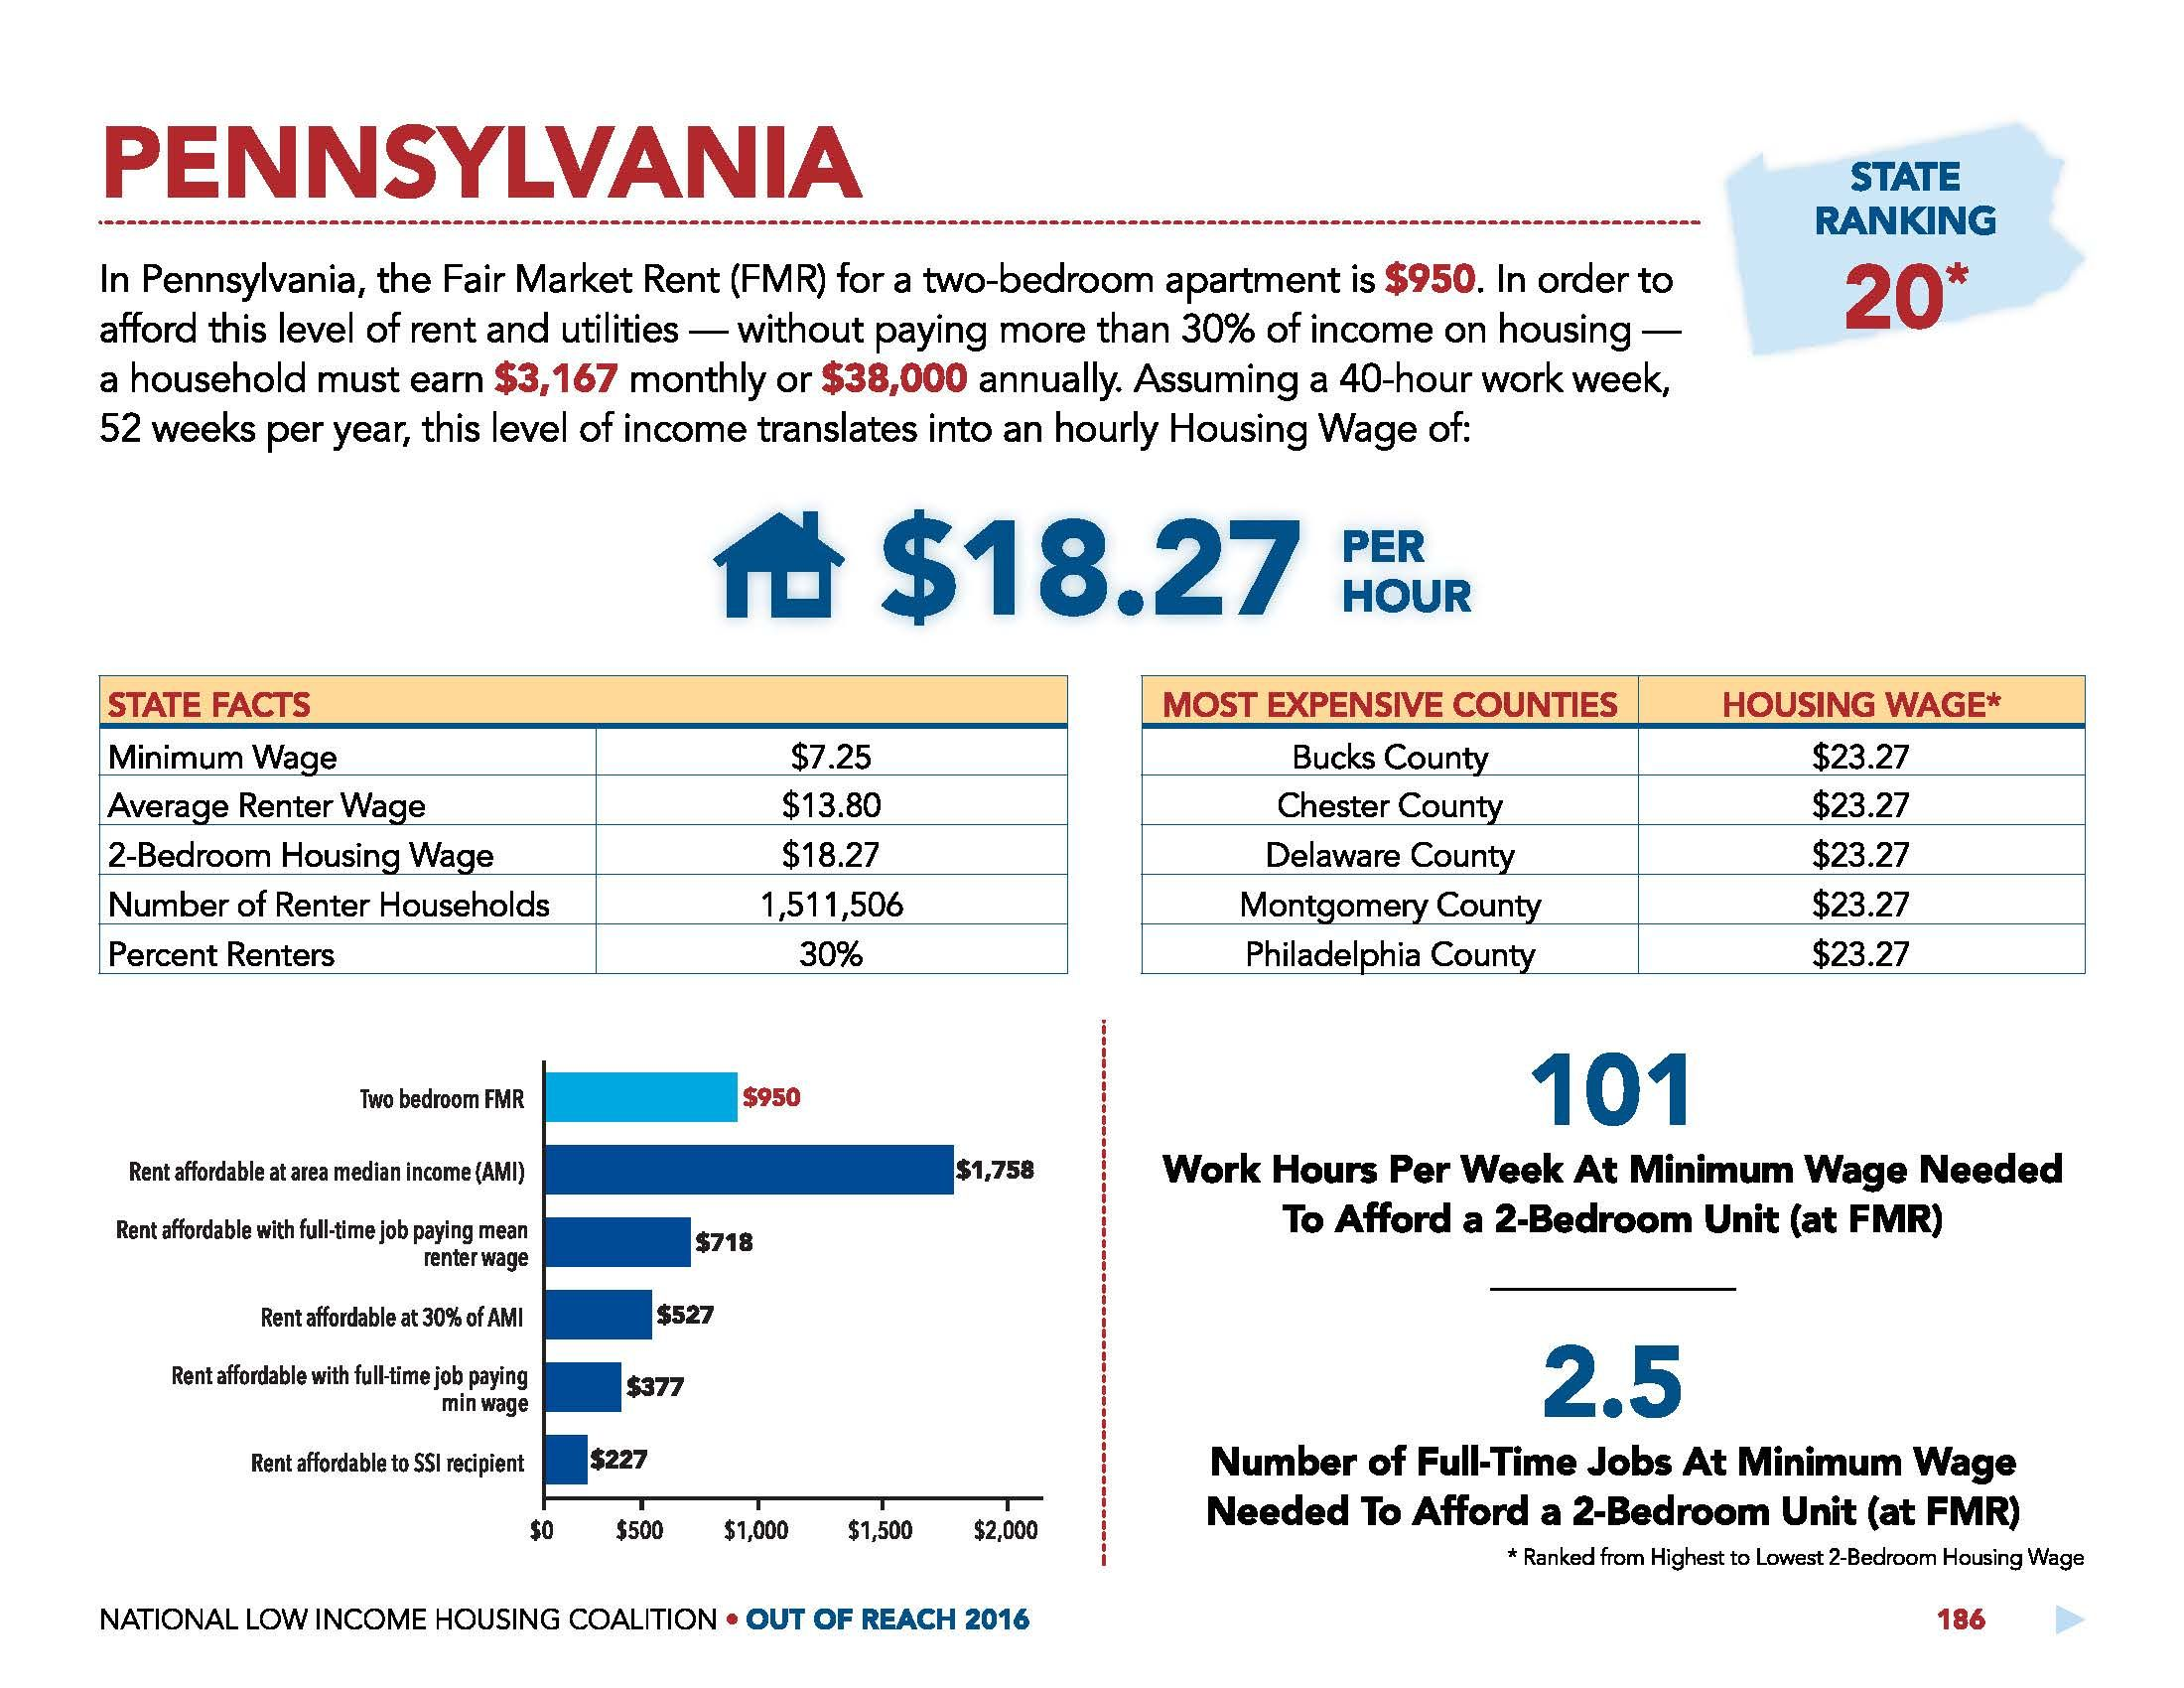 Affordable Housing for Low-Income Families